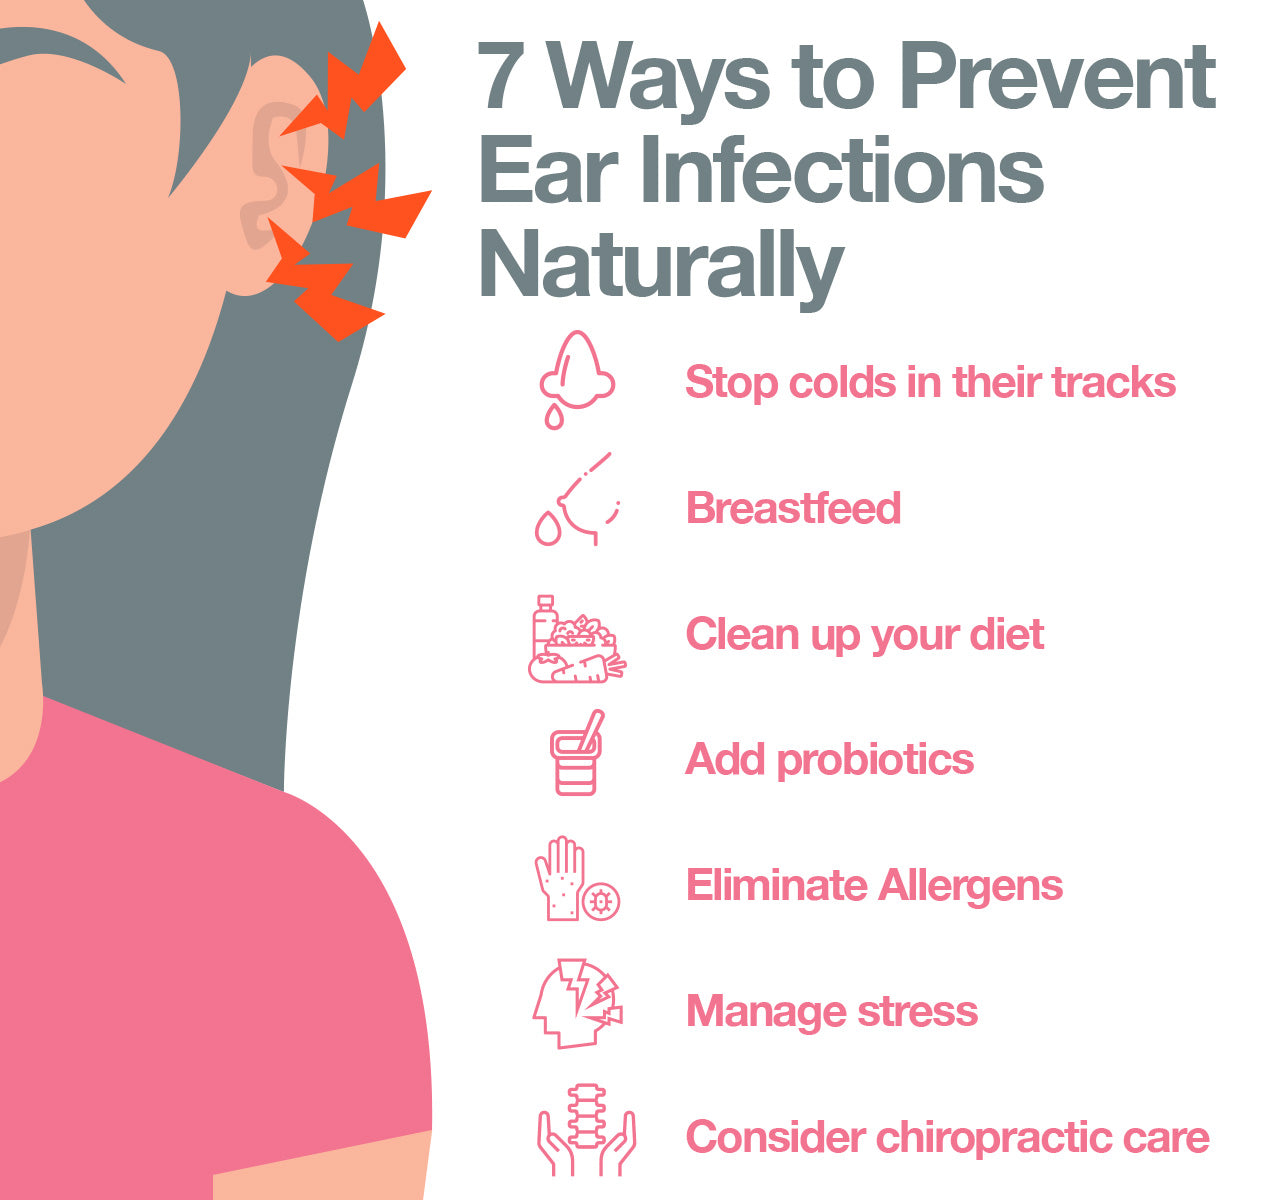 7 Ways to Prevent Ear Infections Naturally